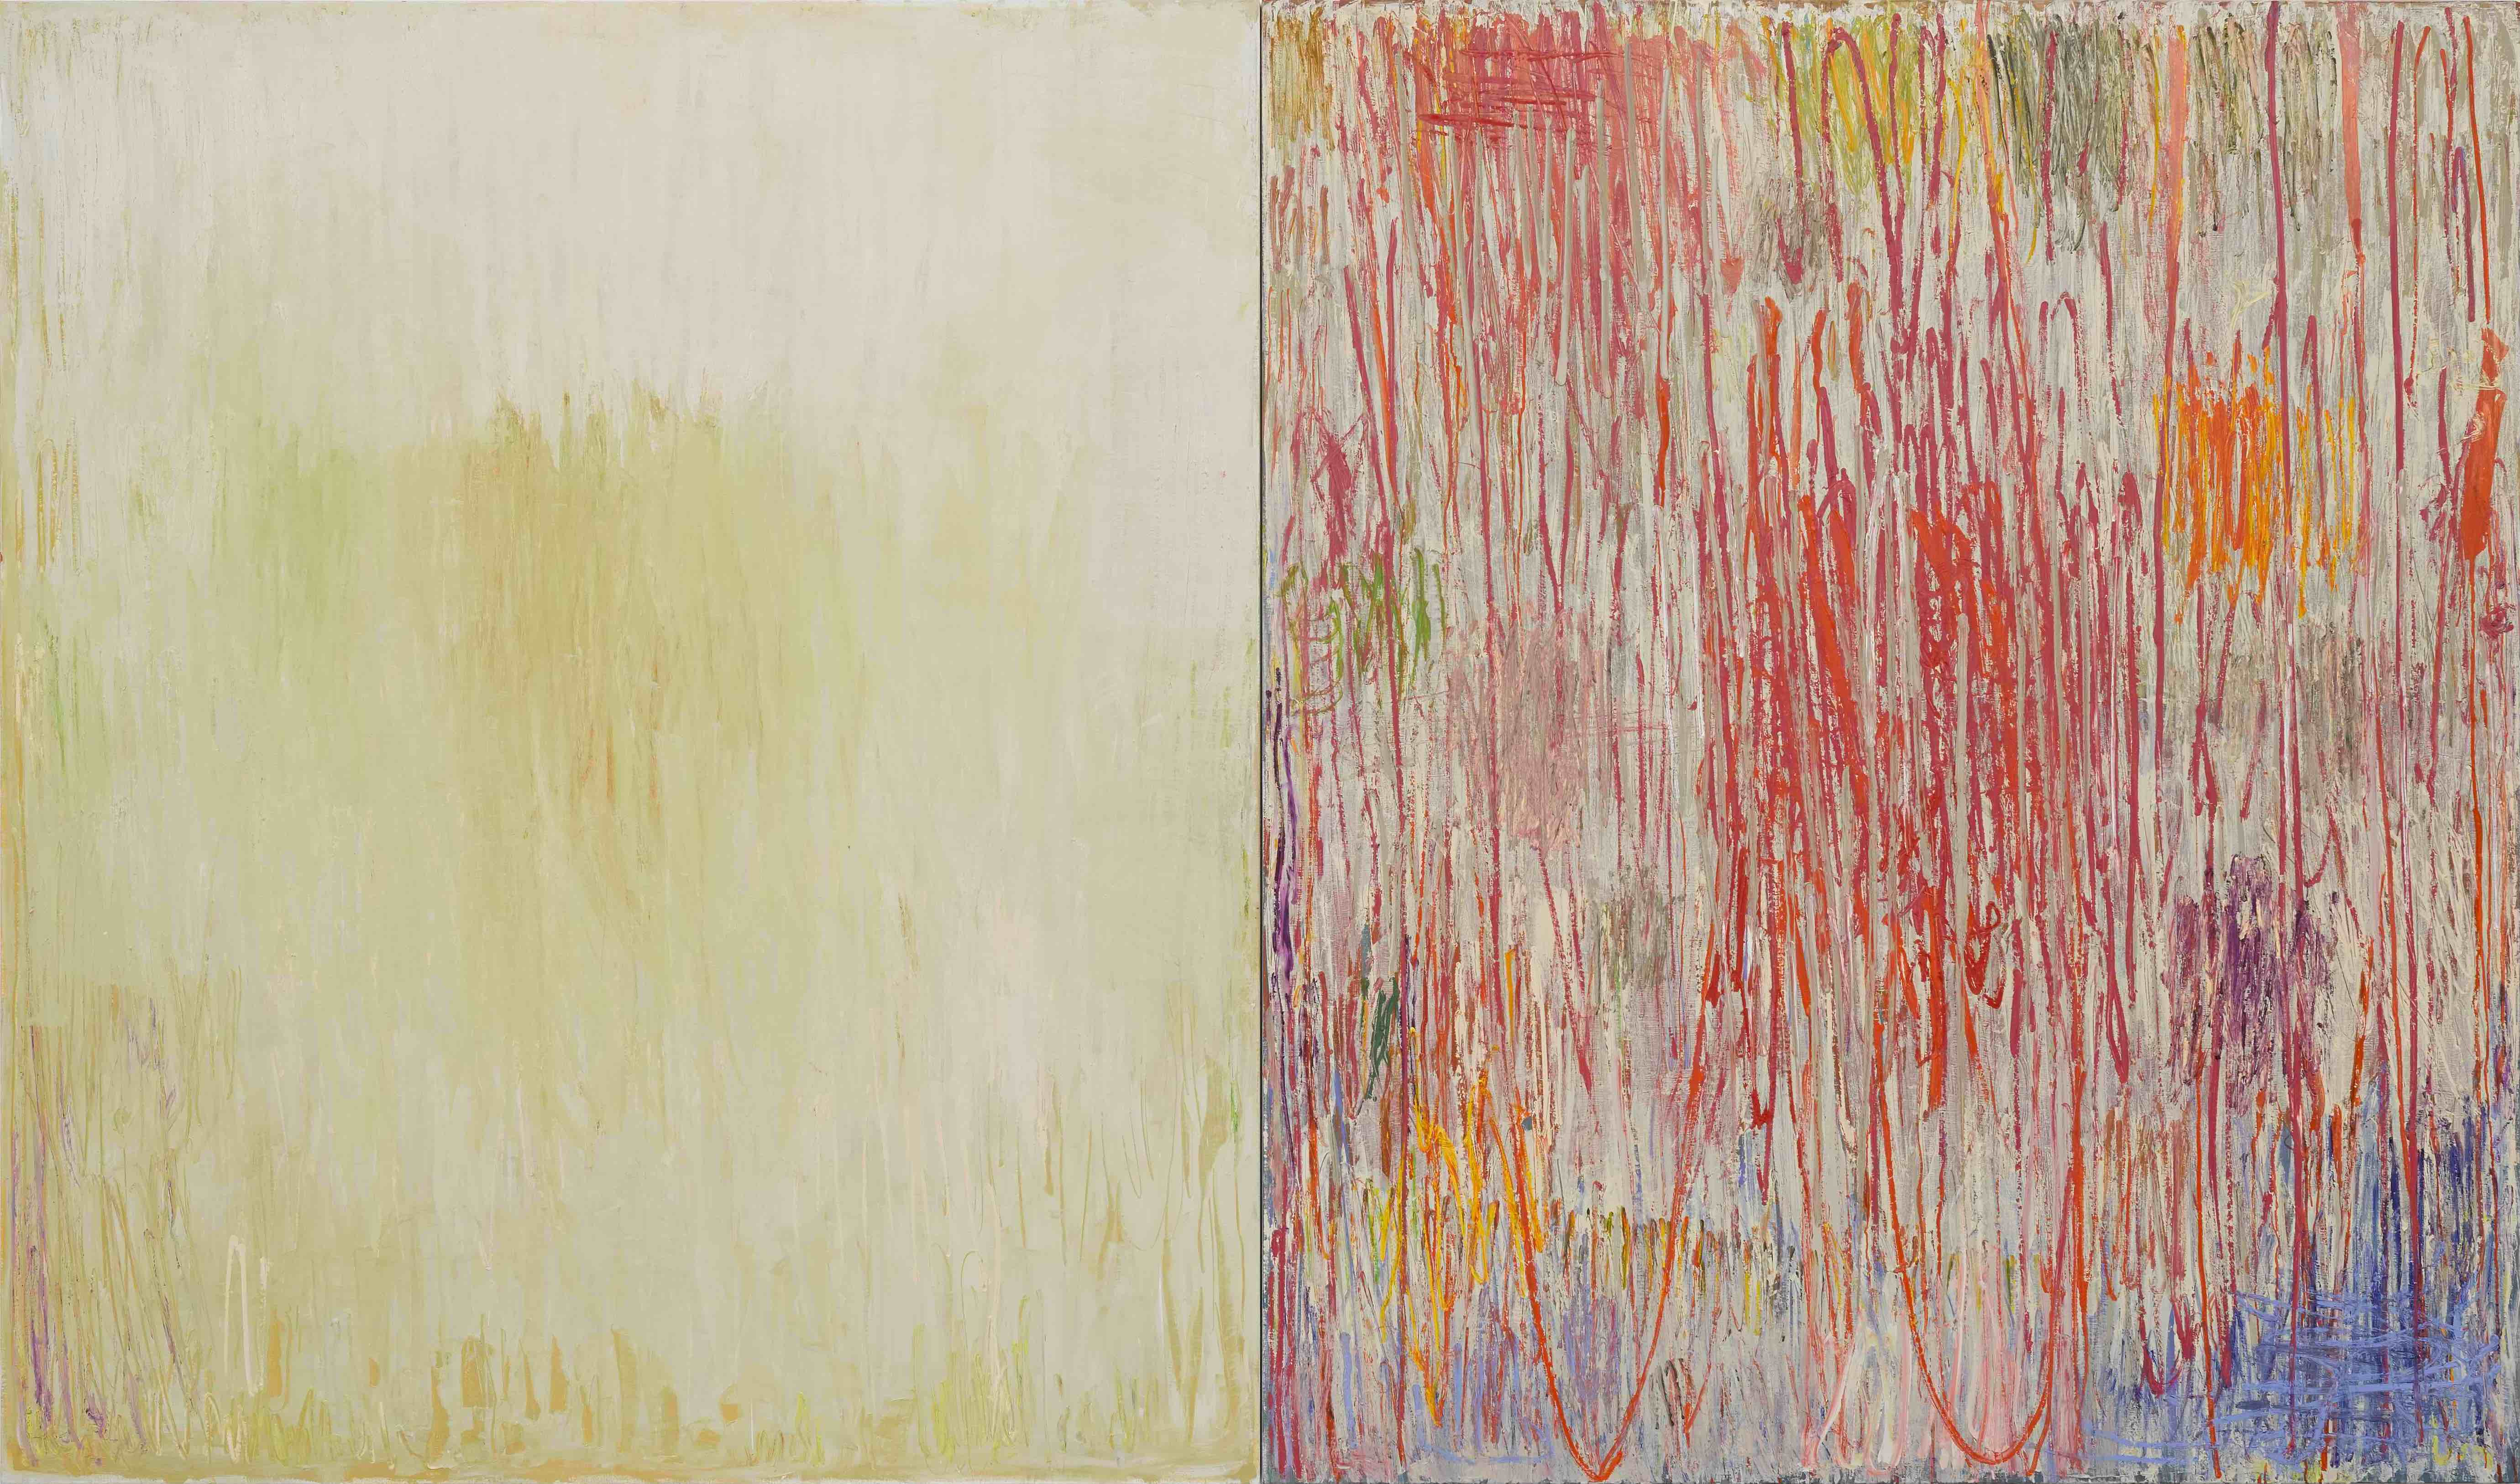 Christopher Le Brun, Mind, 2018, oil on two canvases, 200.3 x 340 cm.